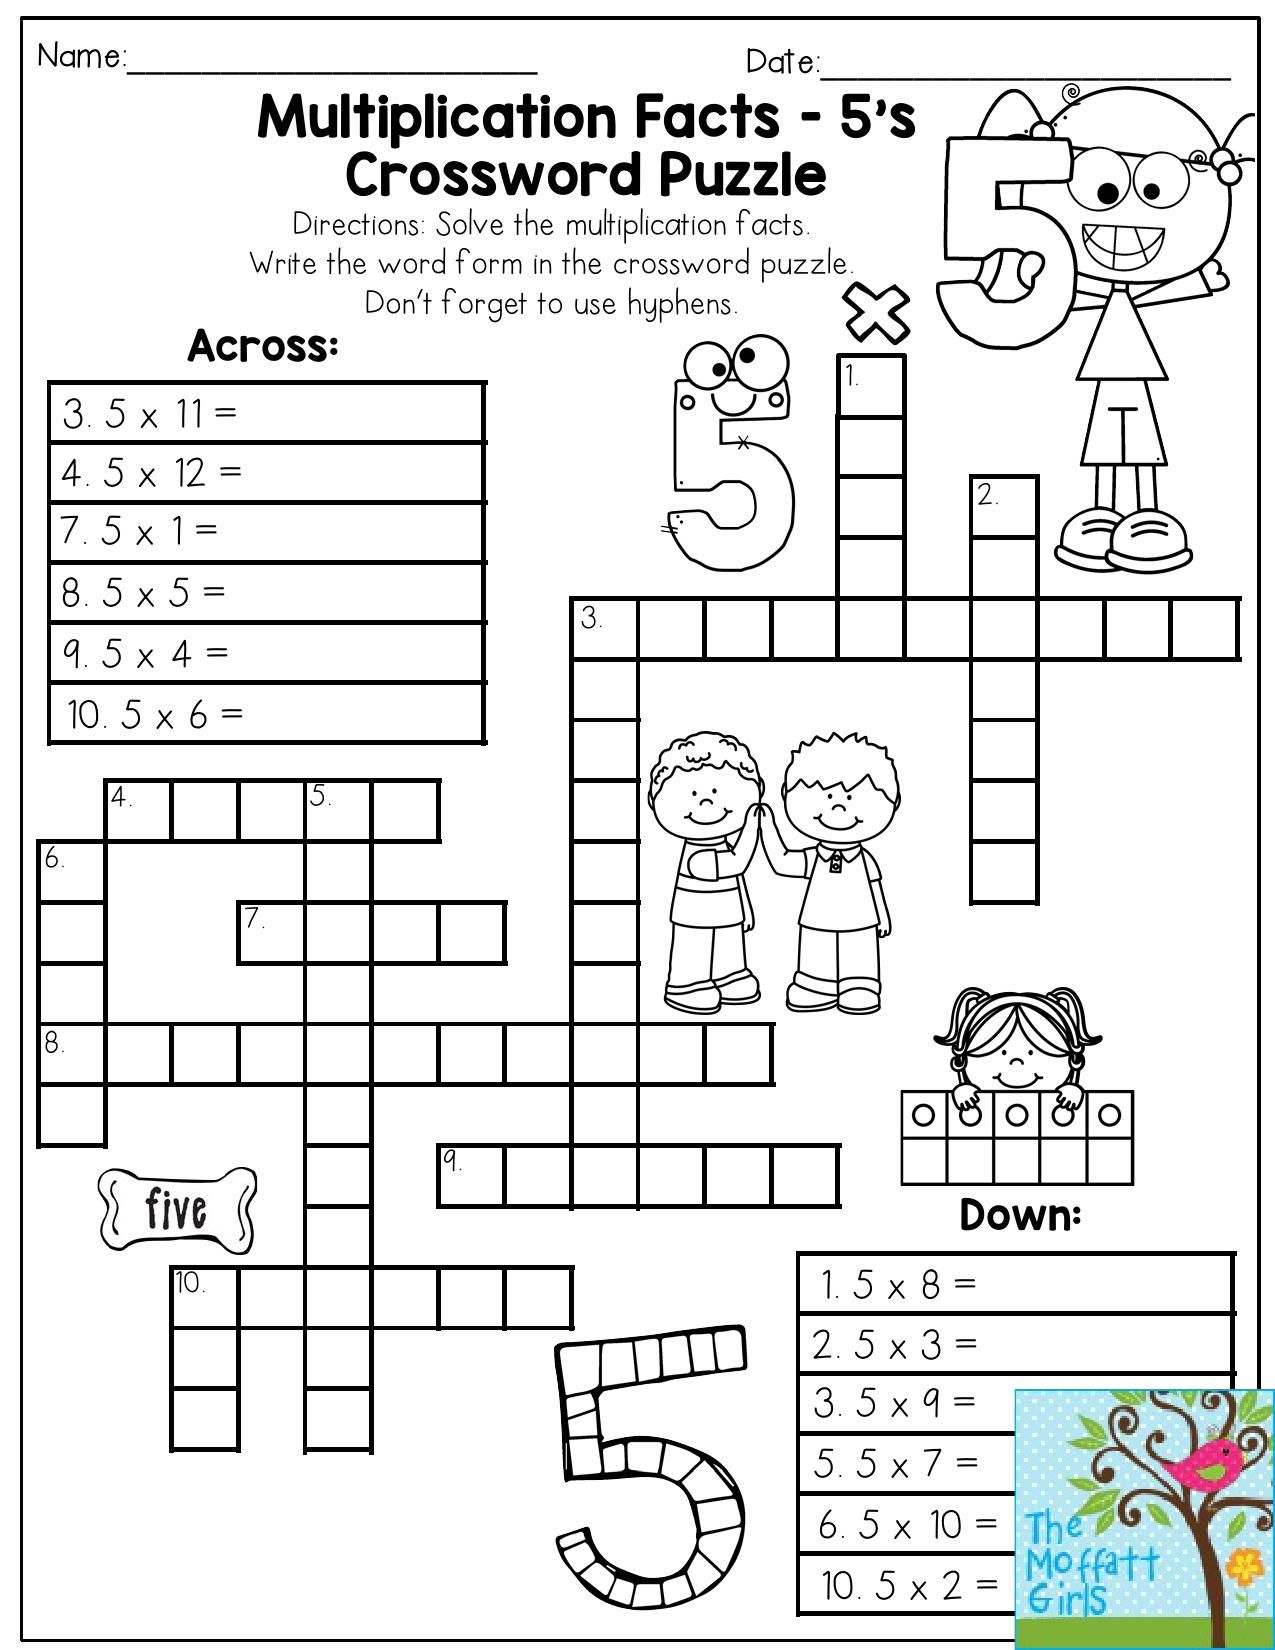 Multiplication Facts Crossword Puzzle- Third Grade Students Love - 4Th Grade Printable Crossword Puzzles